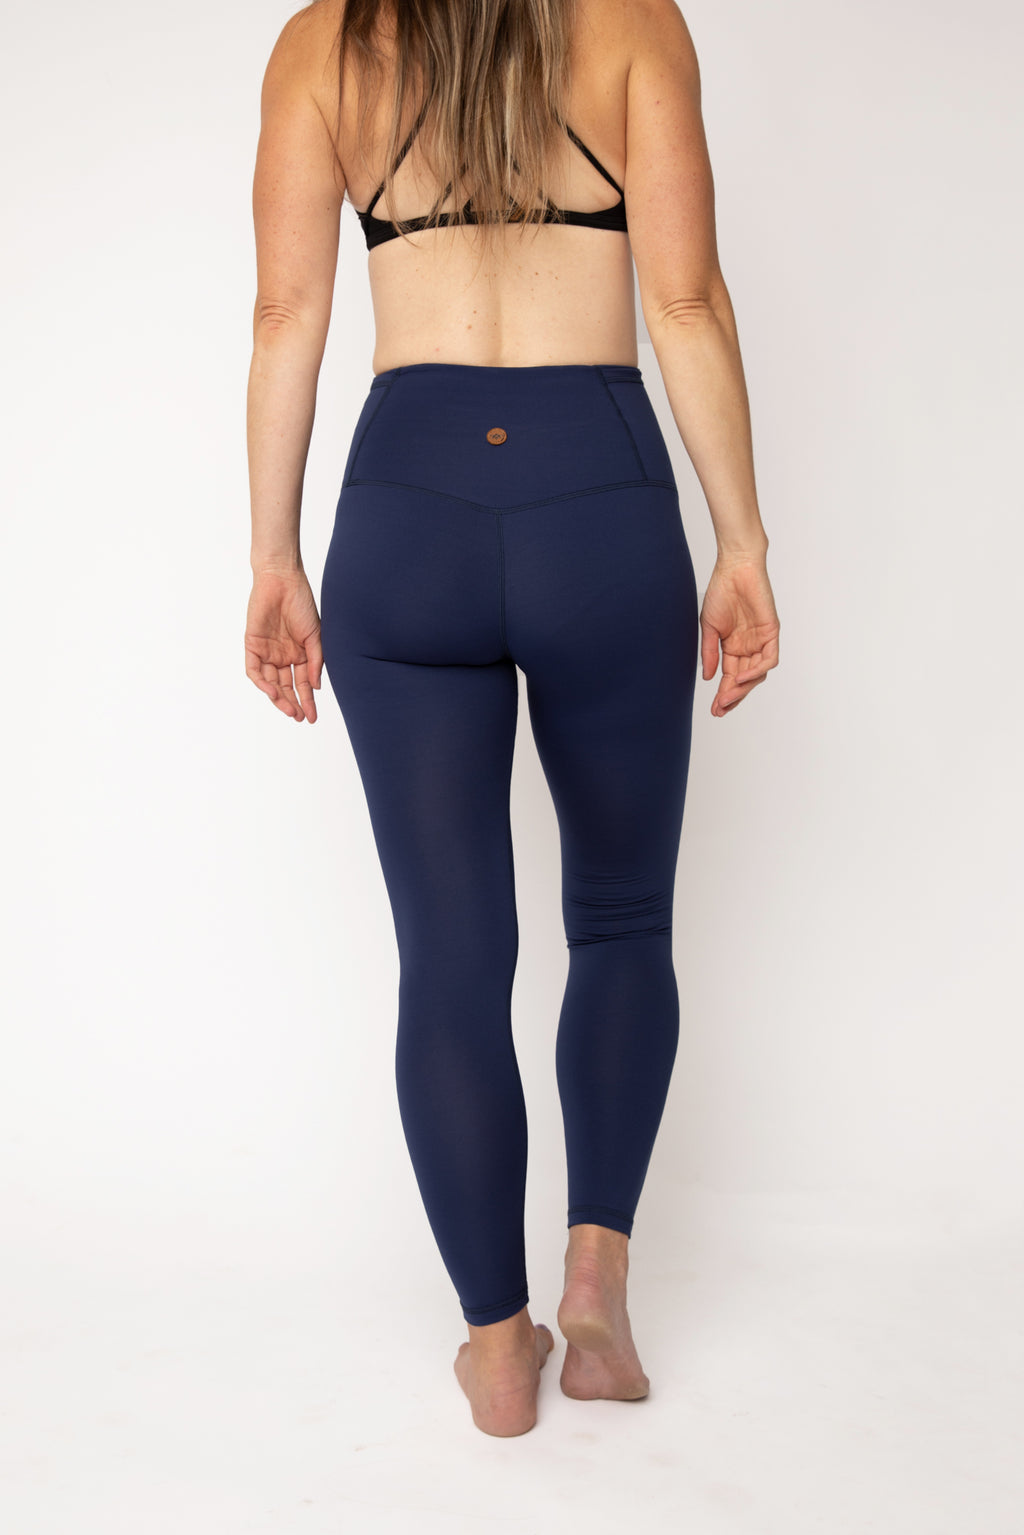 """Marine Blue"" Basecamp Leggings"